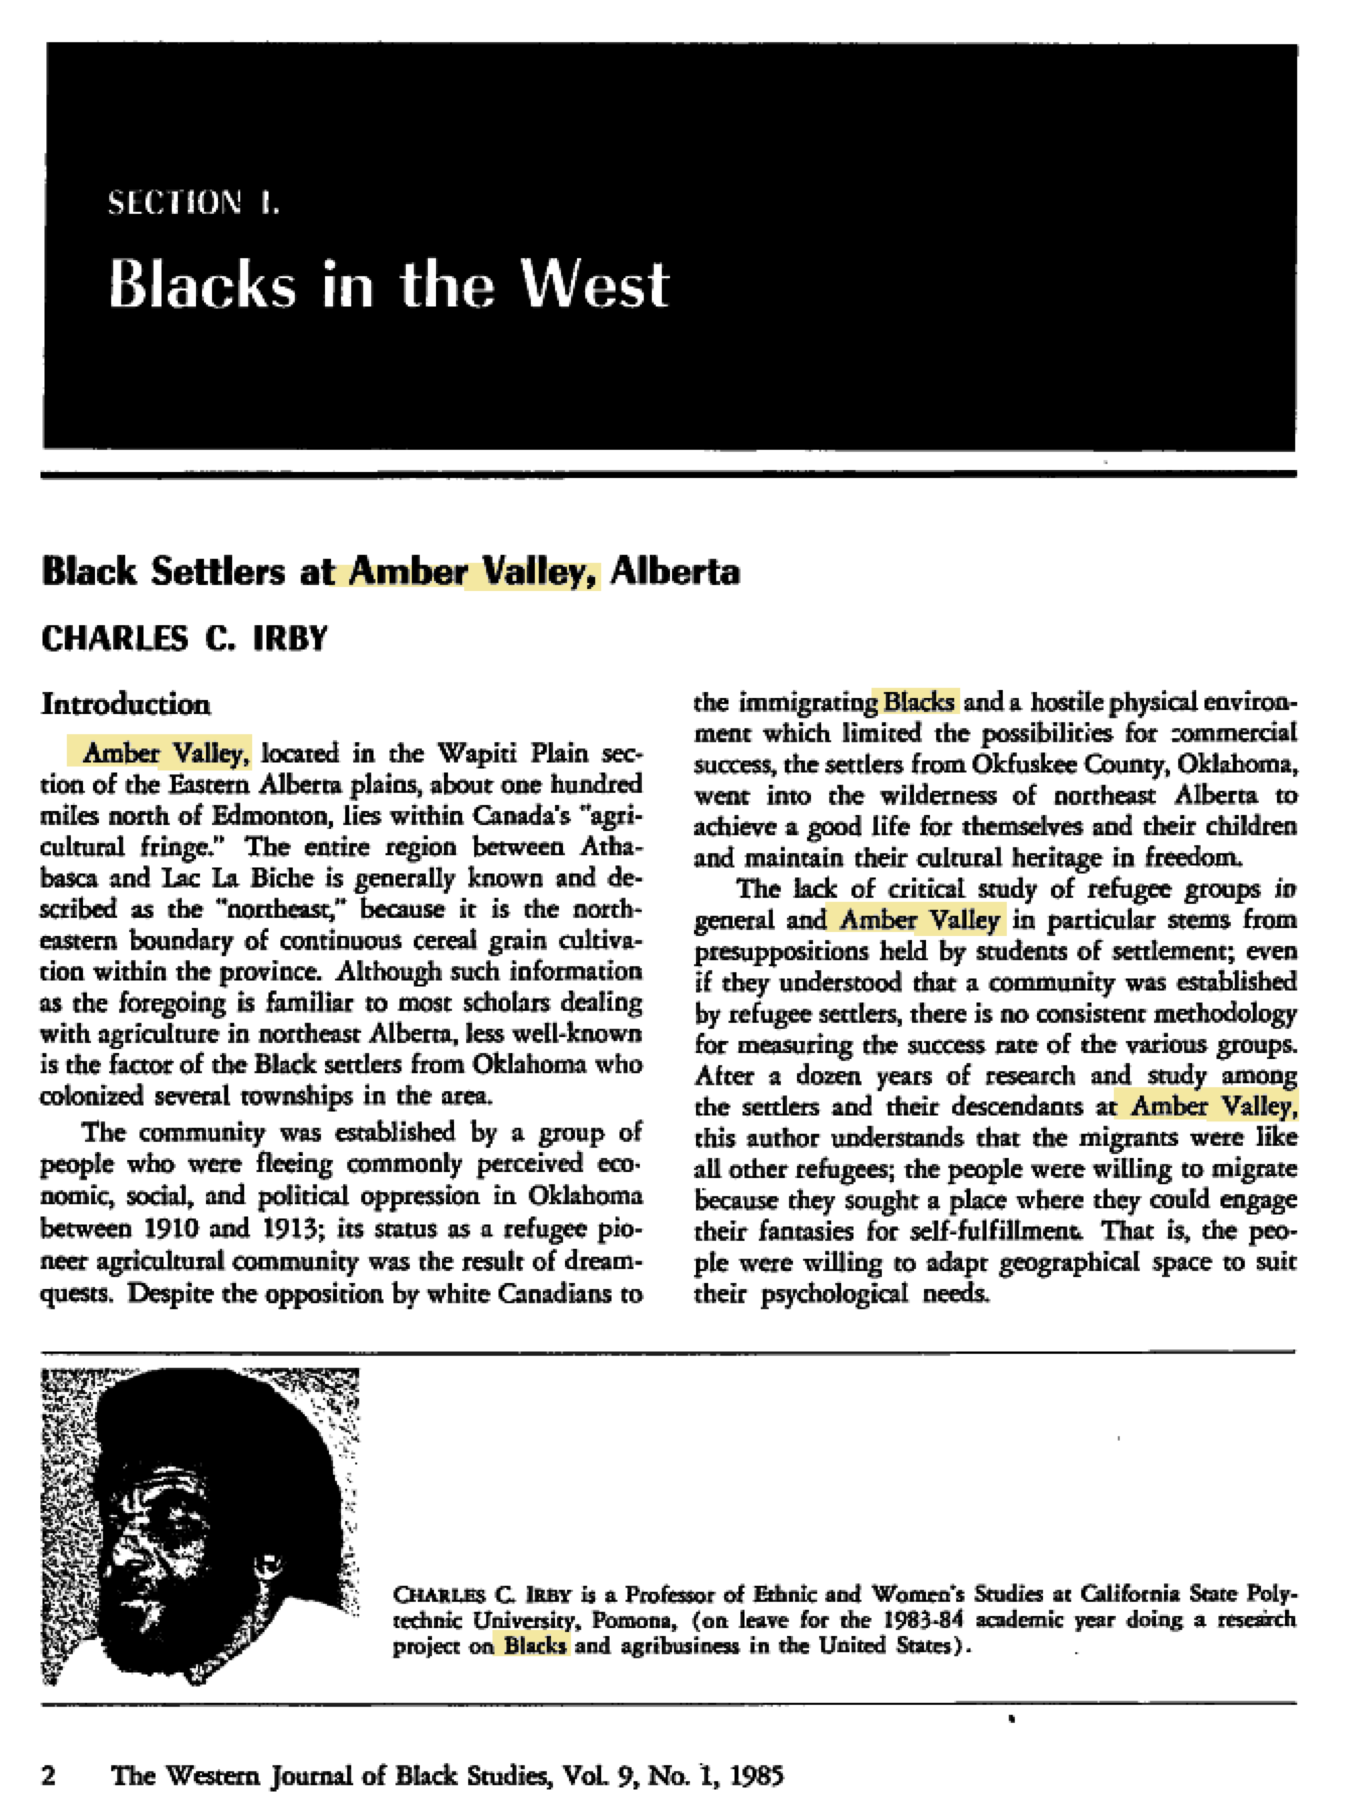 AMBER VALLEY BLACKS IN THE WEST.png